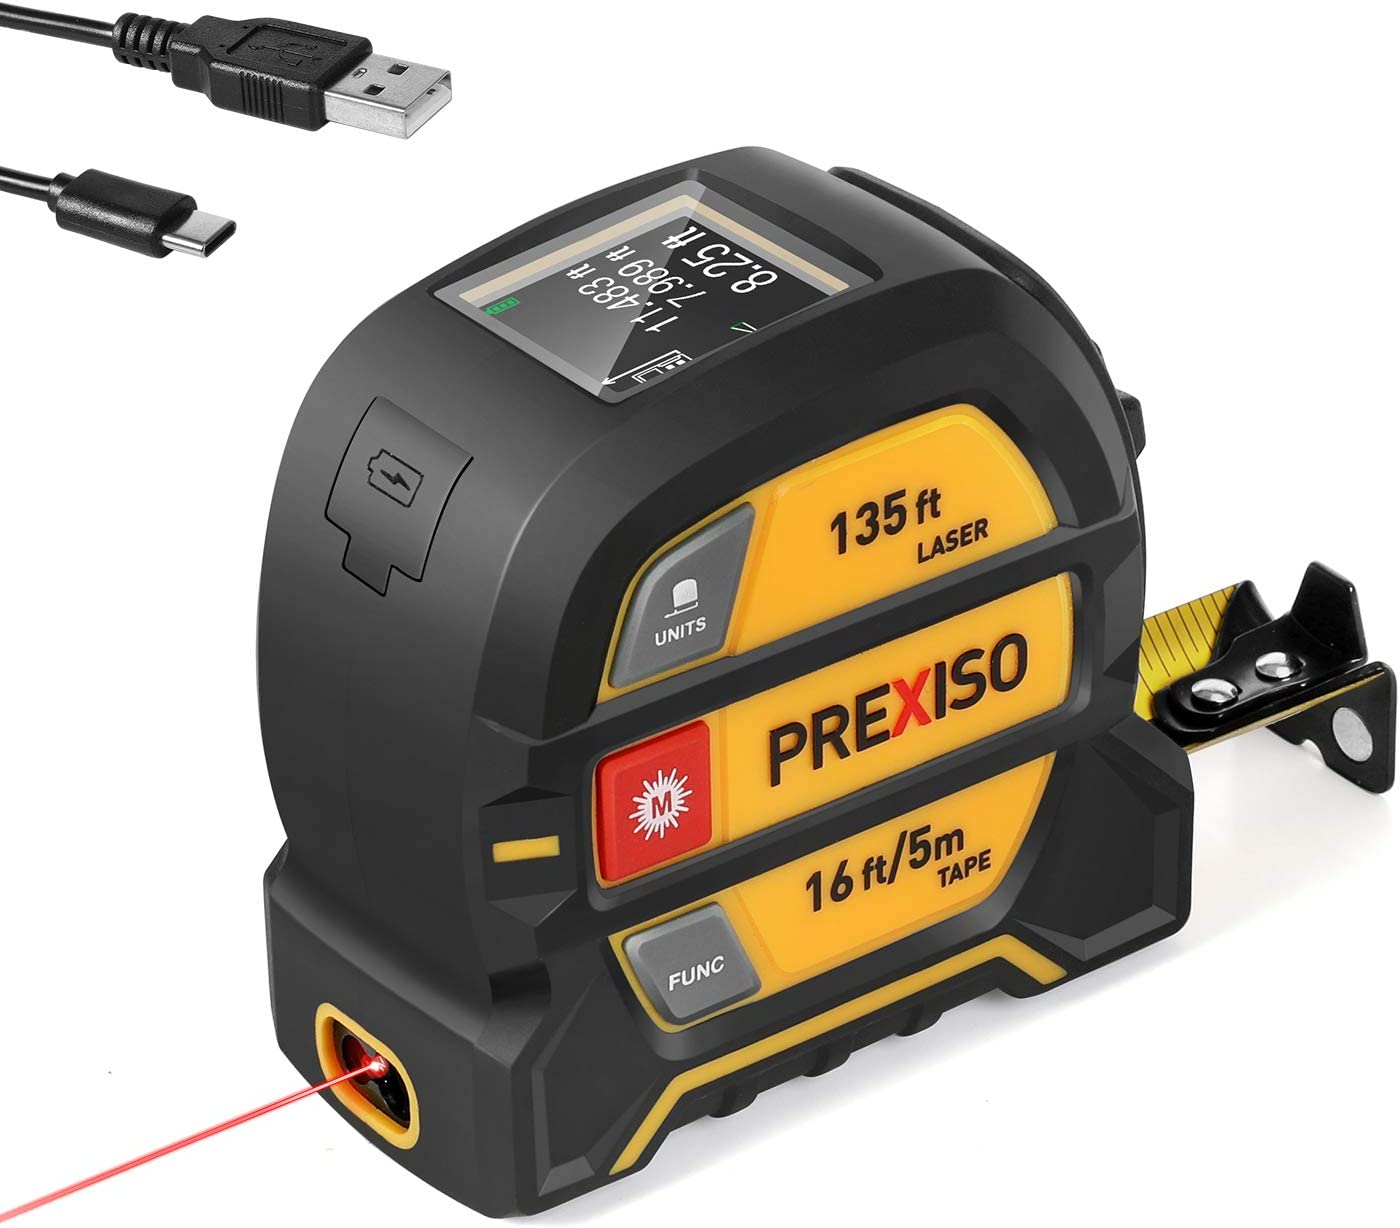 PREXISO Laser Tape Measure, 2-in-1 Laser Measure 135Ft & Tape Measure 16 Ft, Rechargeable Laser Distance Measure with Color Display, Multi-Measurement Modes, Nylon Coating Tape with Magnetic Hook